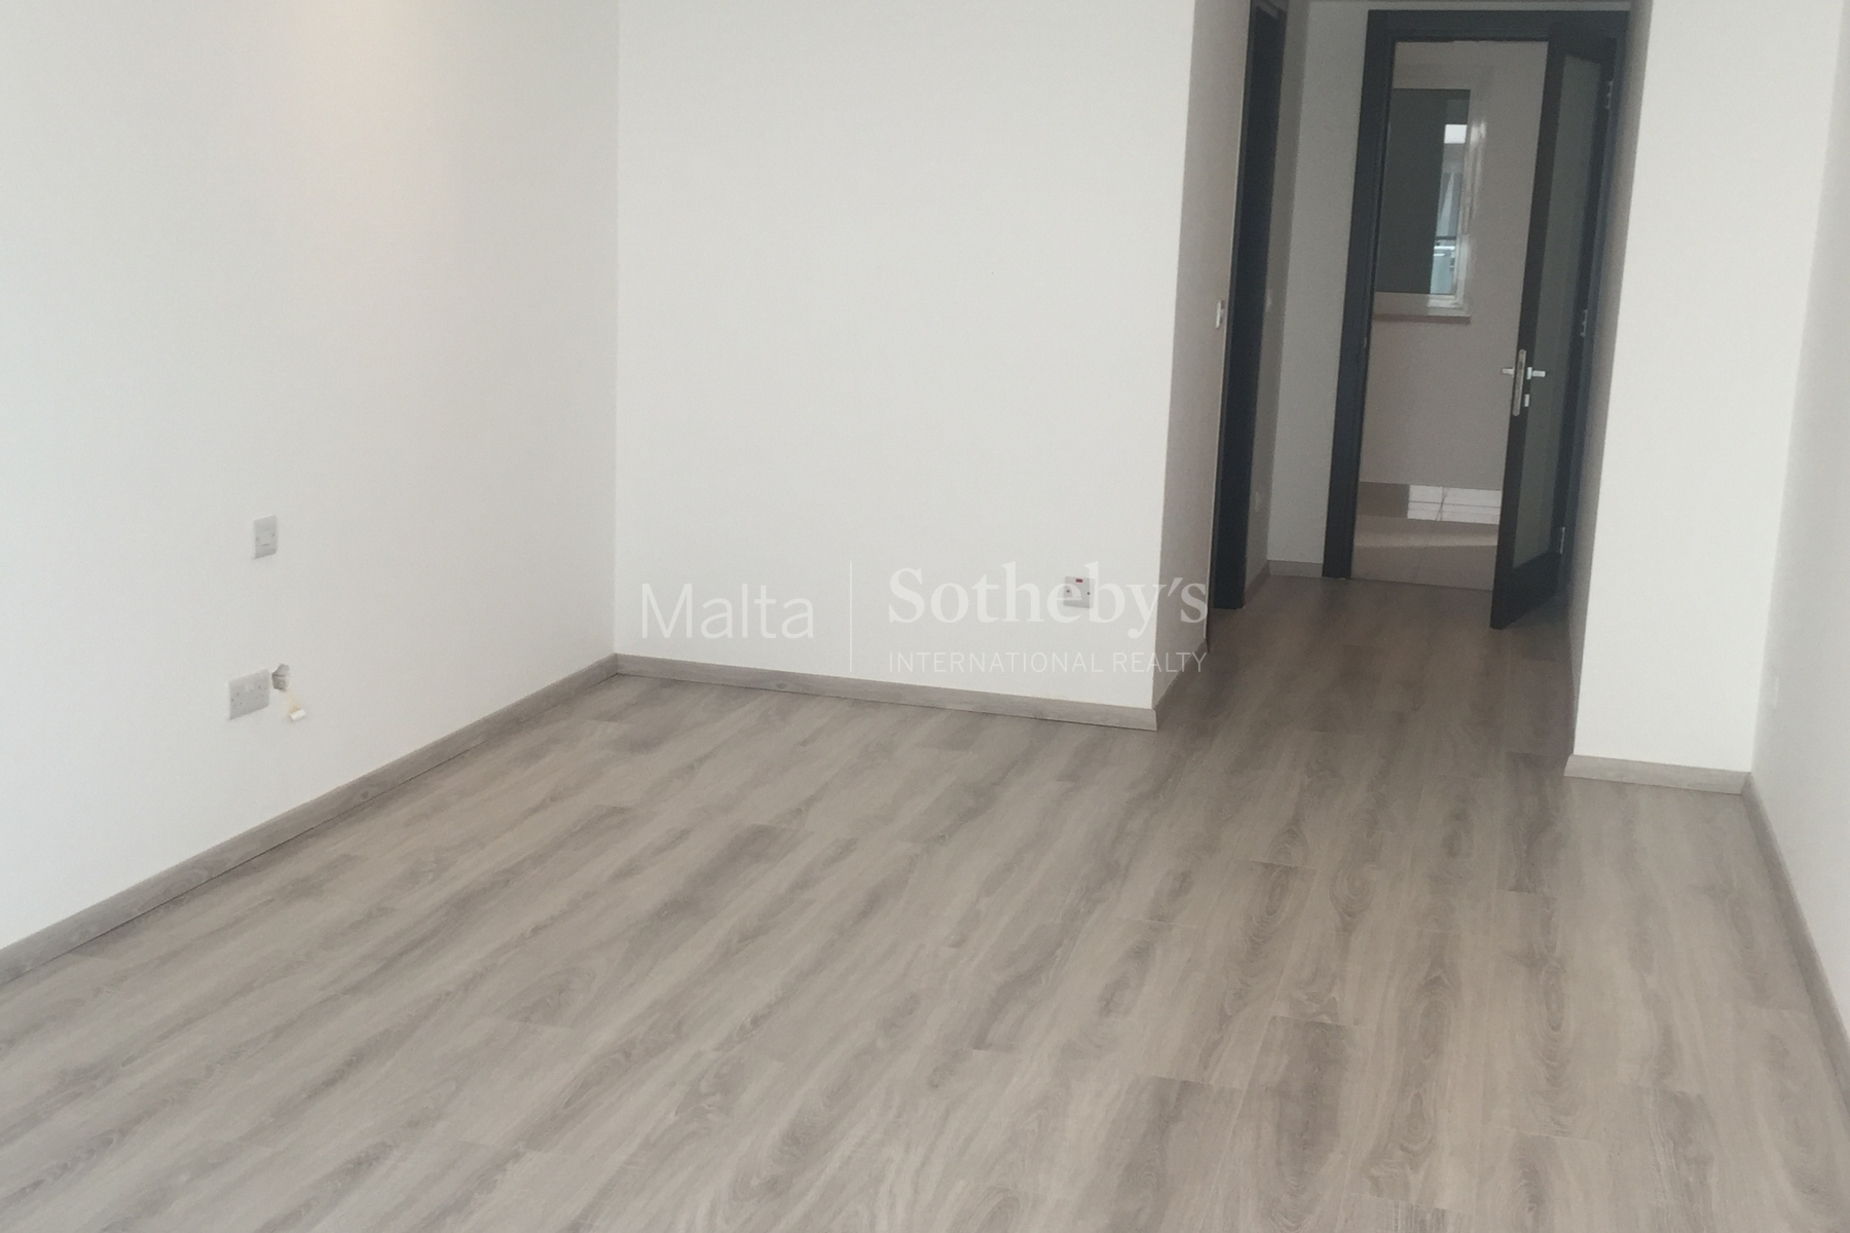 3 bed Apartment For Rent in Sliema, Sliema - thumb 11